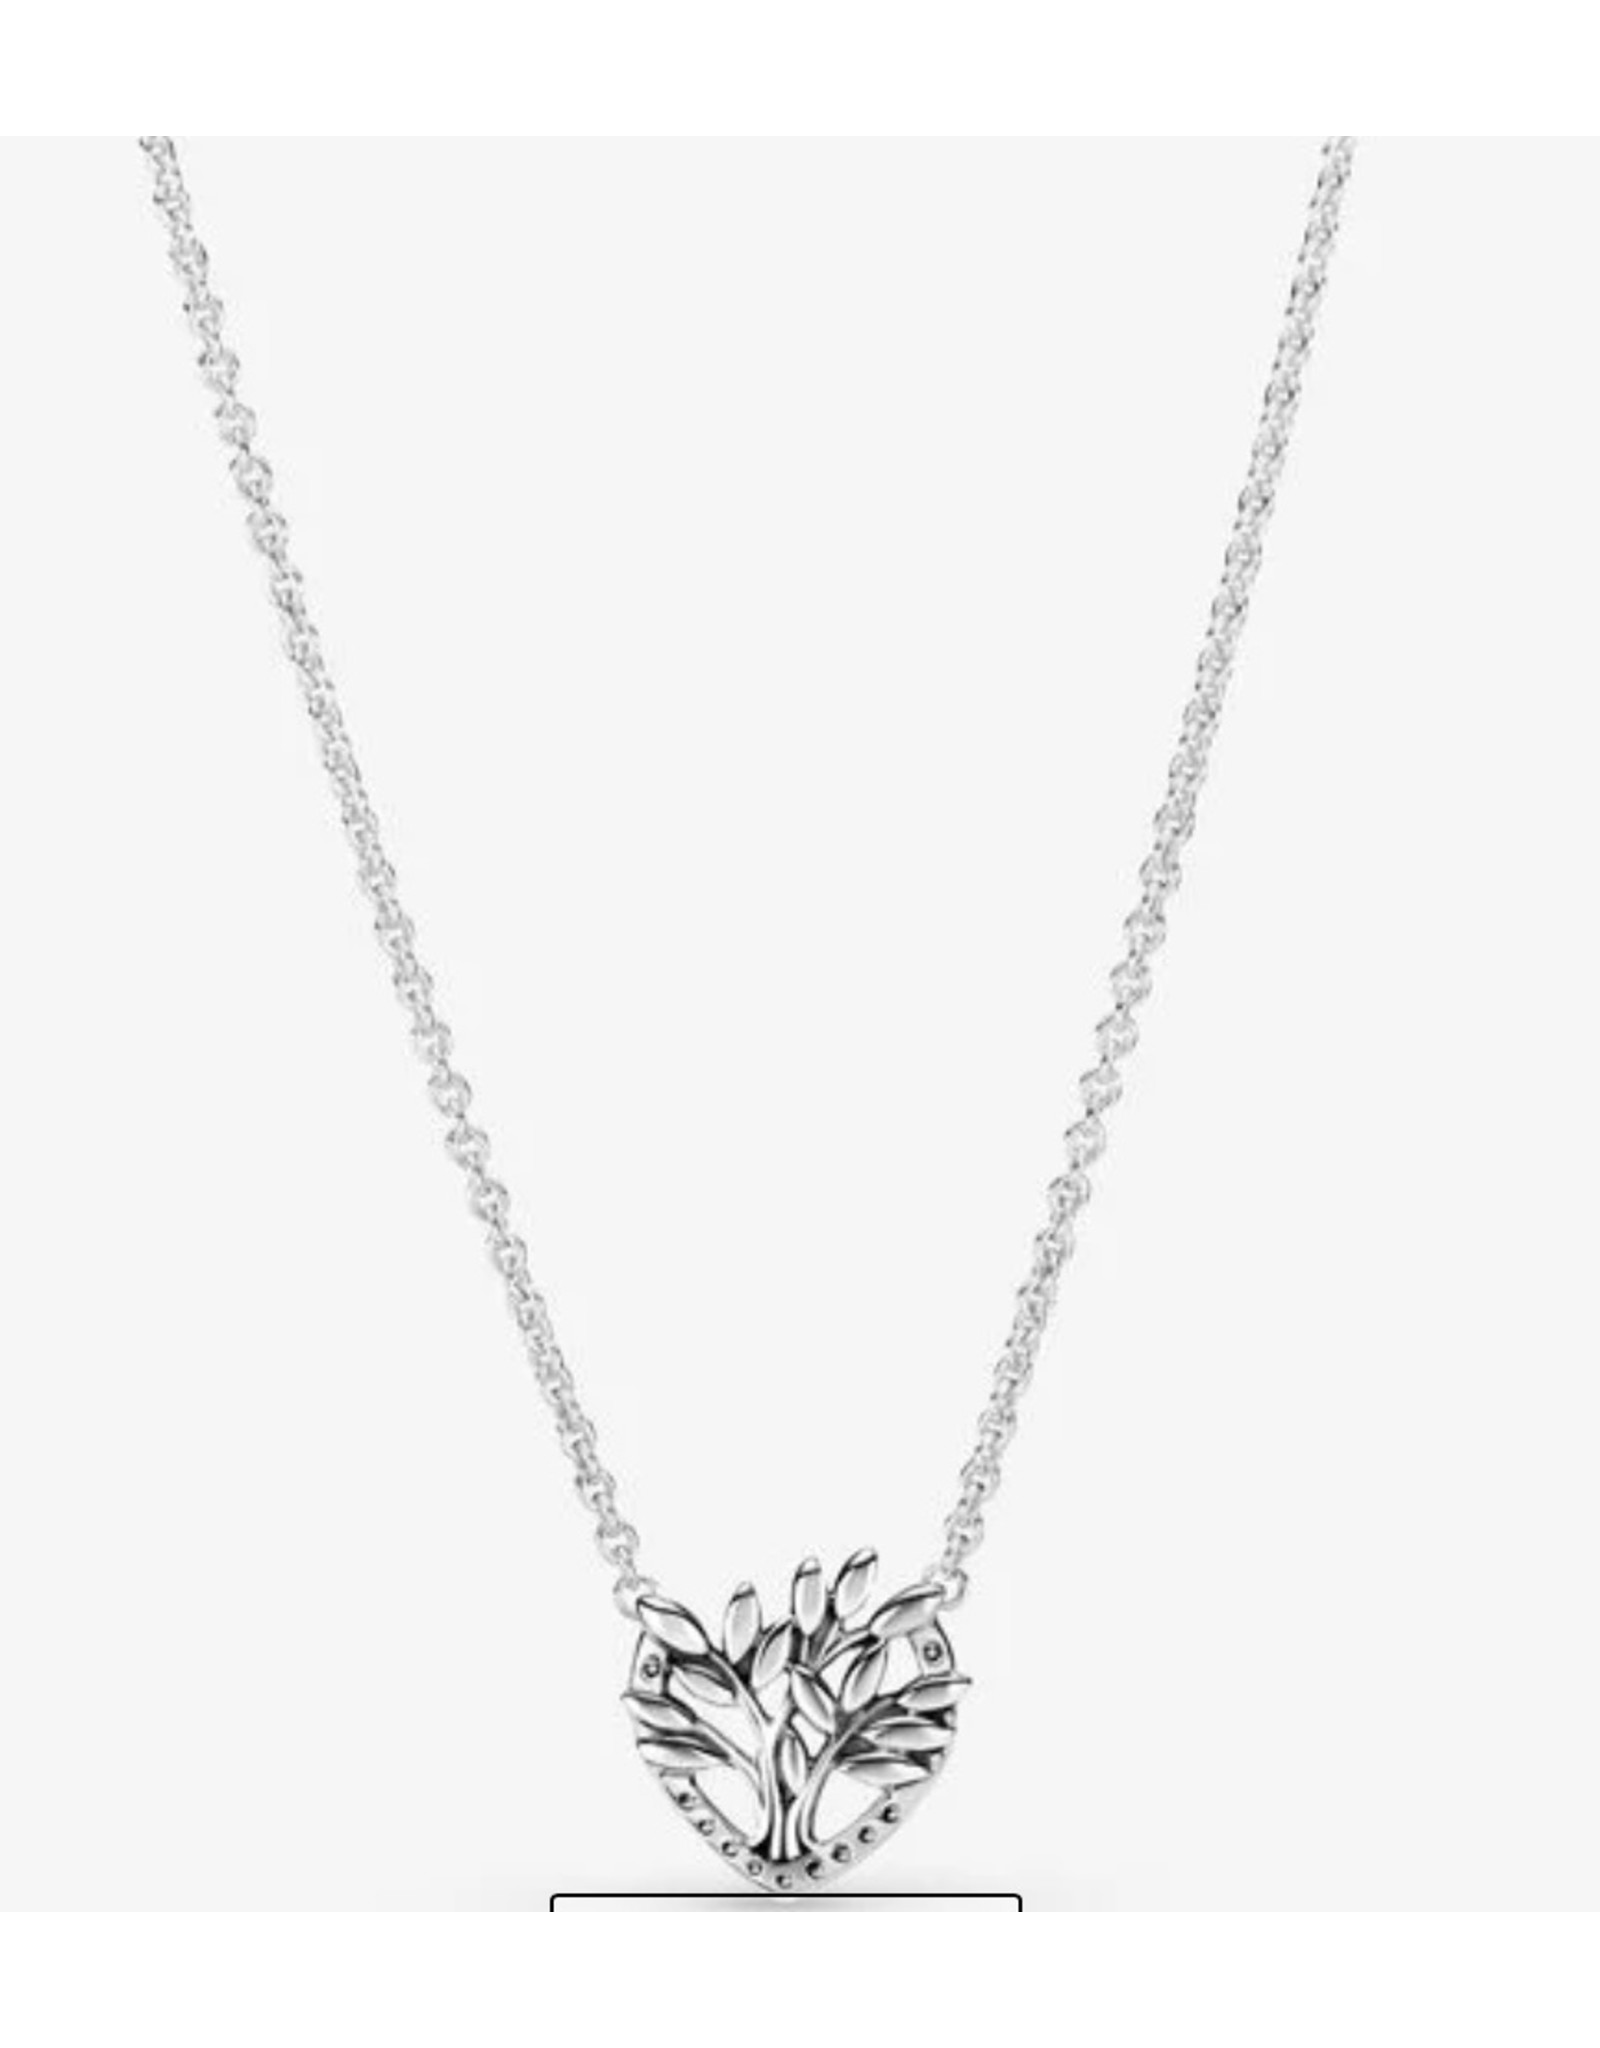 Pandora Pandora Necklace,399261C01-50, Heart Family Tree, Clear CZ